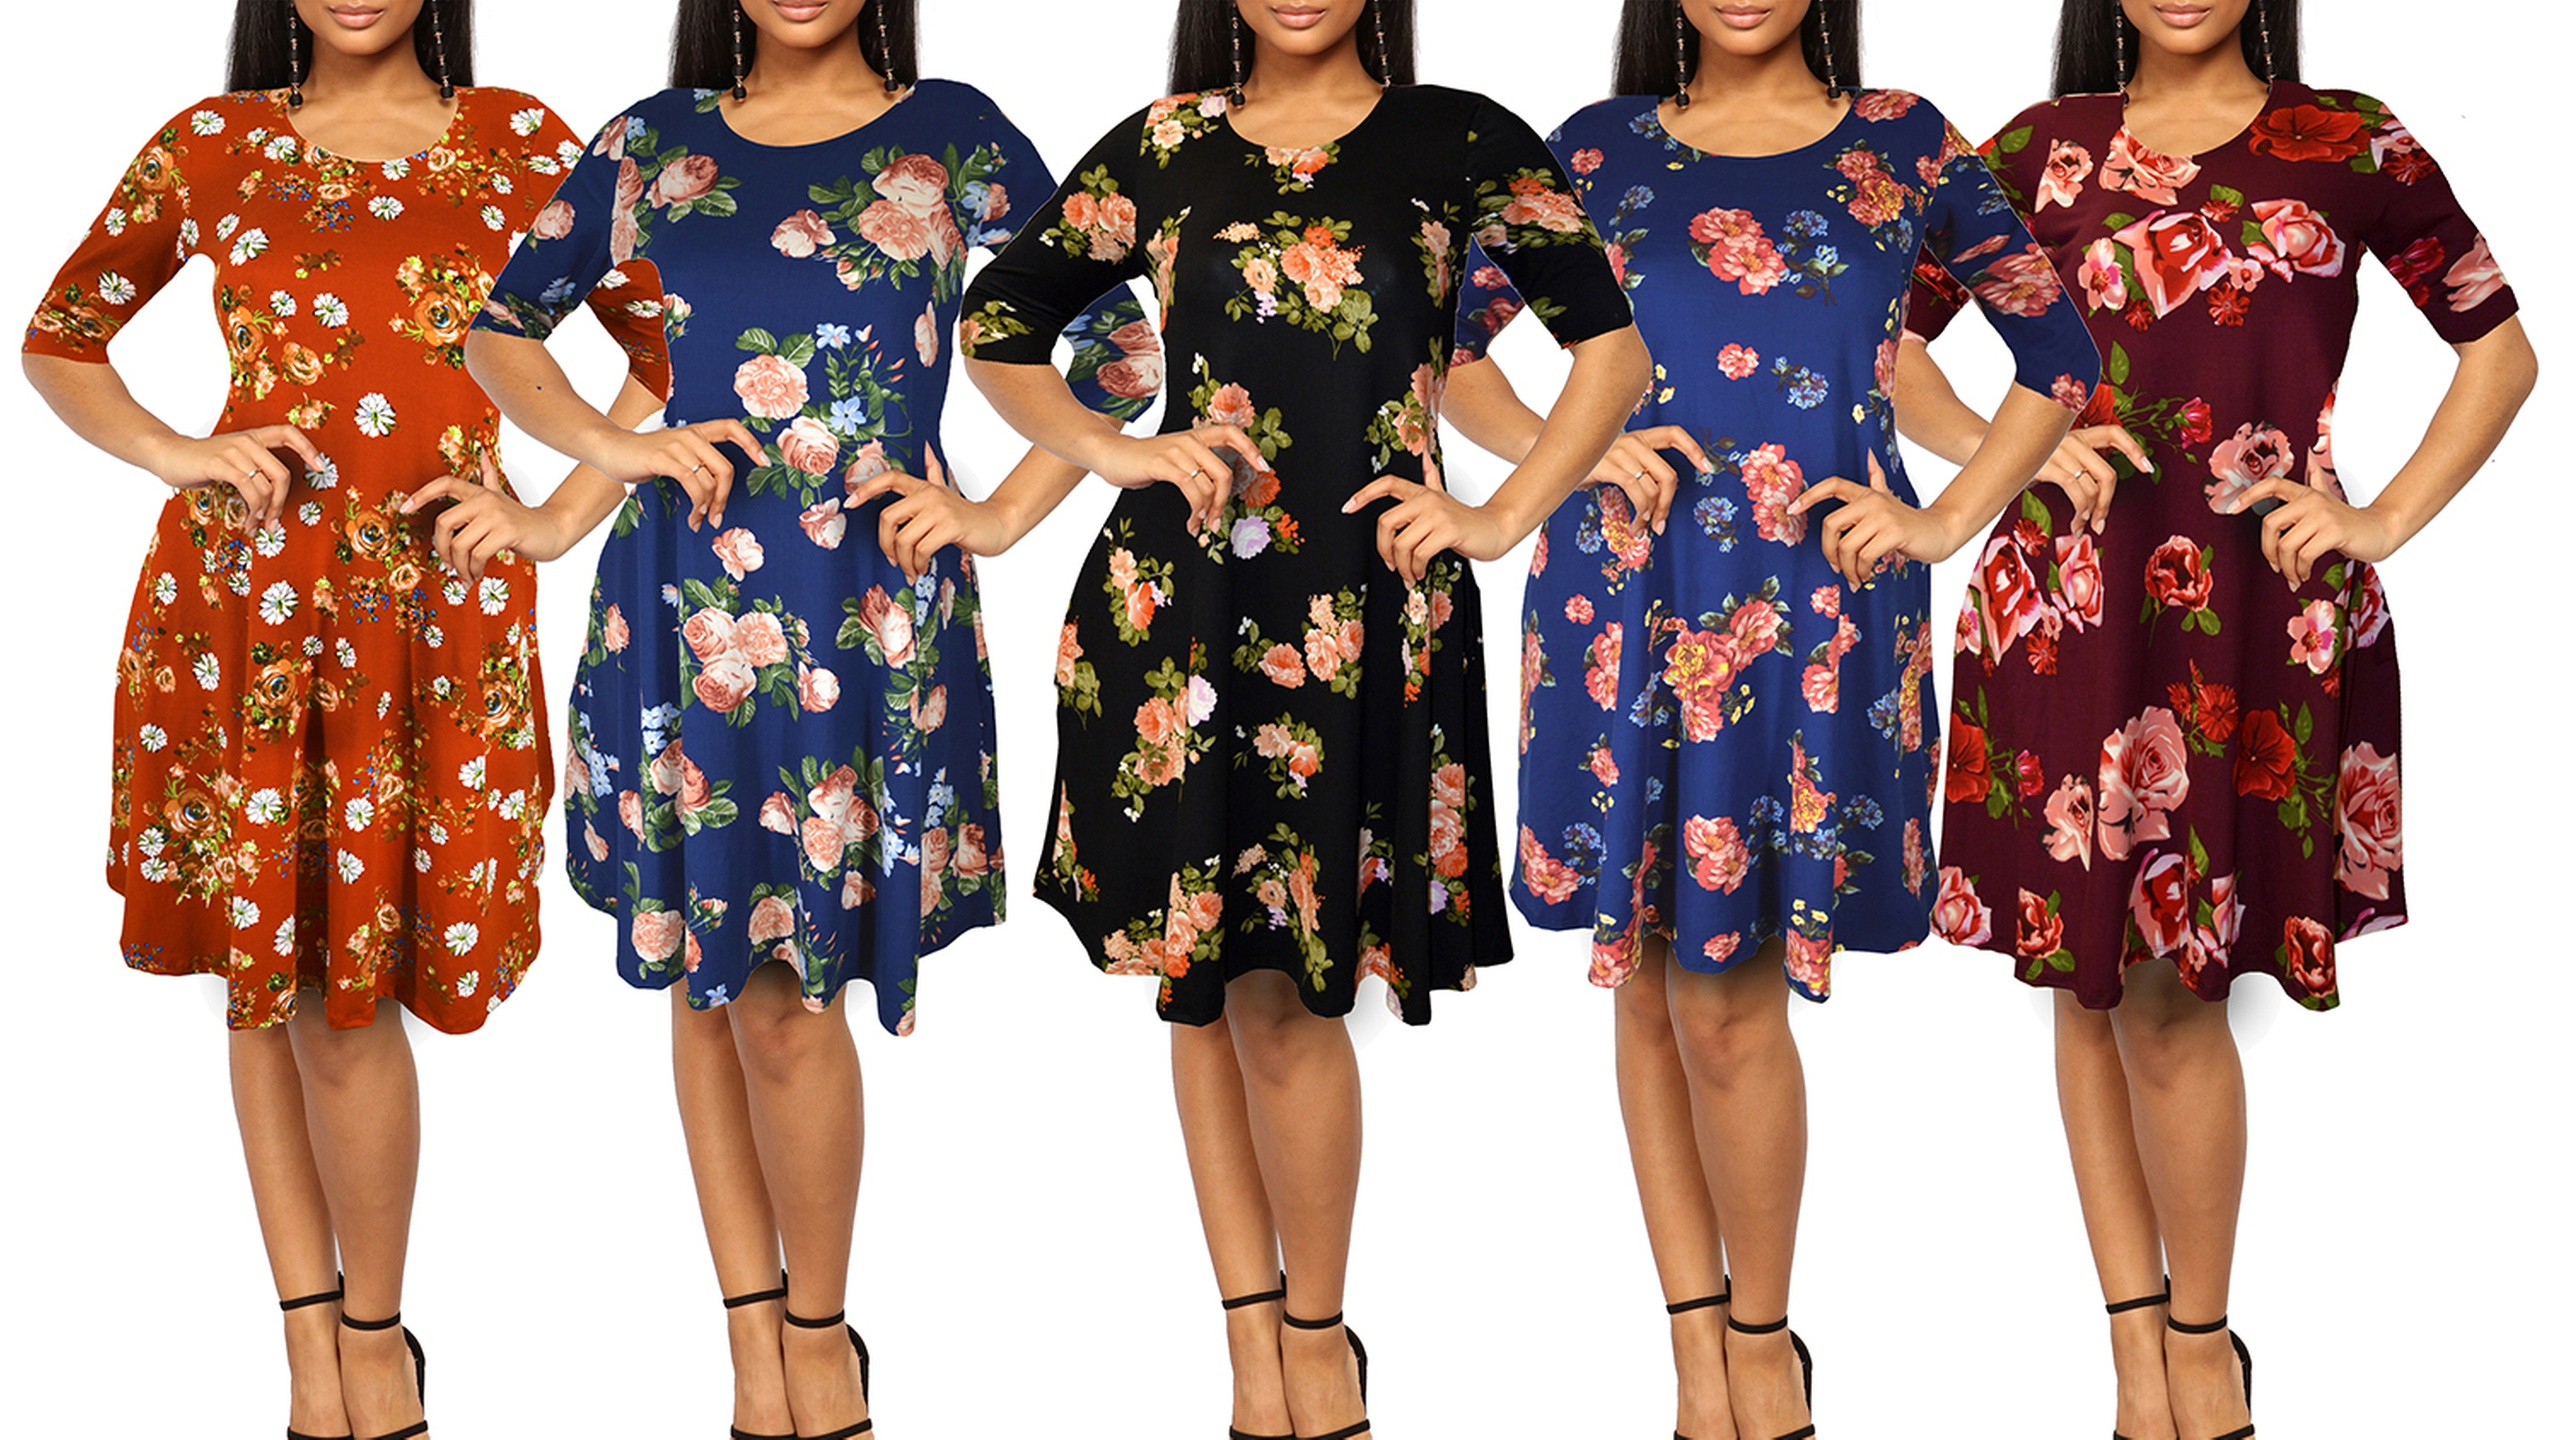 643f4a3a4770 Women s Floral-Print 3 4-Sleeve T-Shirt Dress with Side Pockets. Plus Sizes  Available.